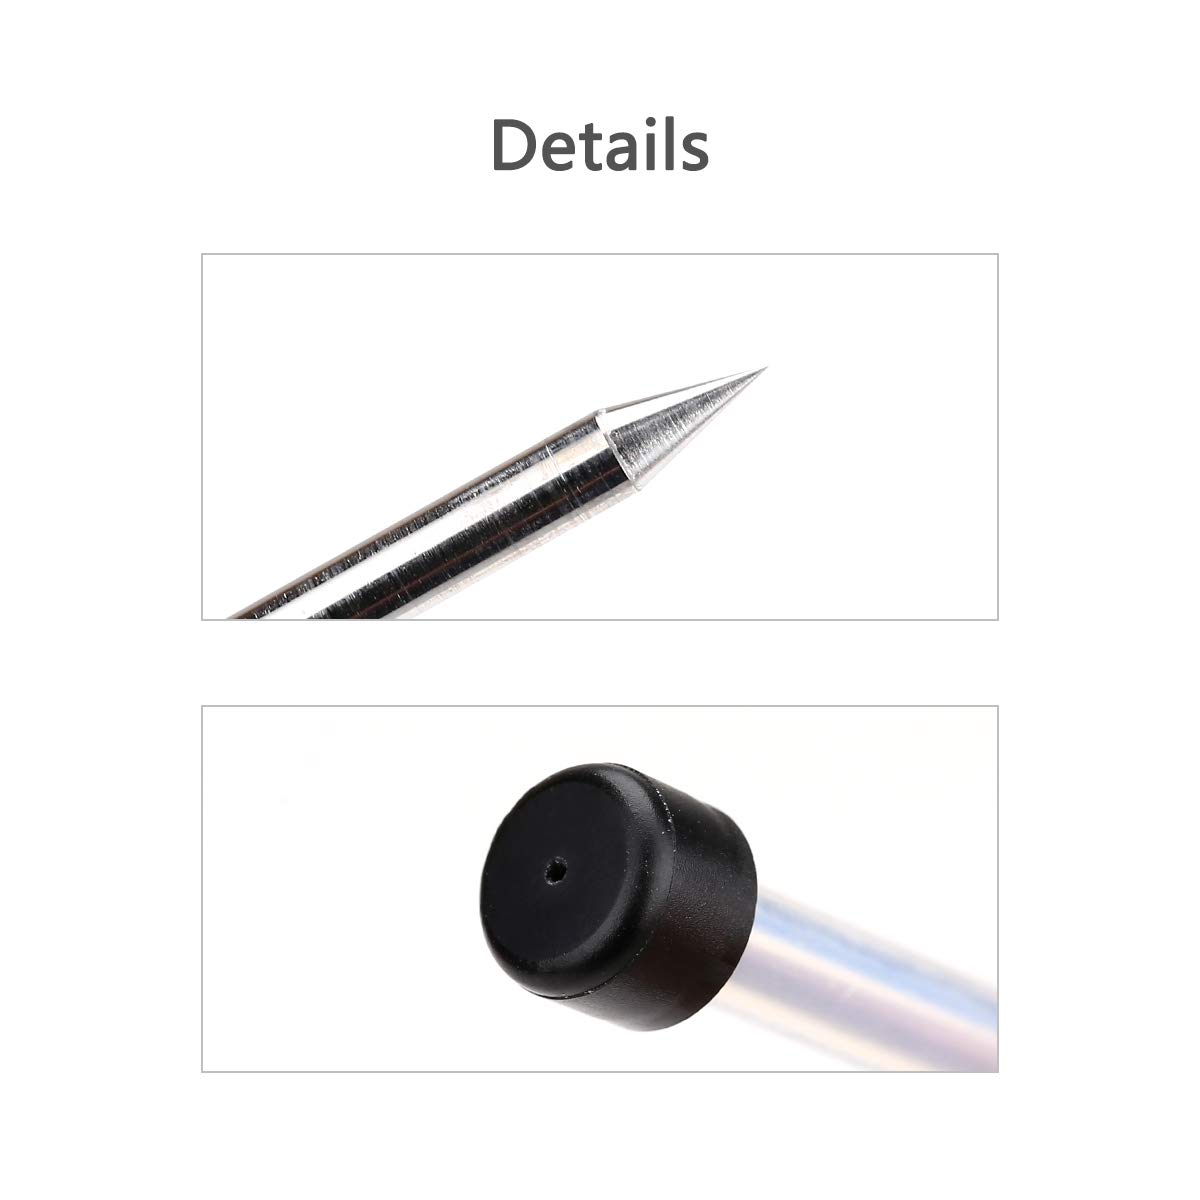 Fiber Fusion Splicer Electrodes Rod for INNO Electrodes IFS-10//15//15H view 3//view 5//view 7 Equipment